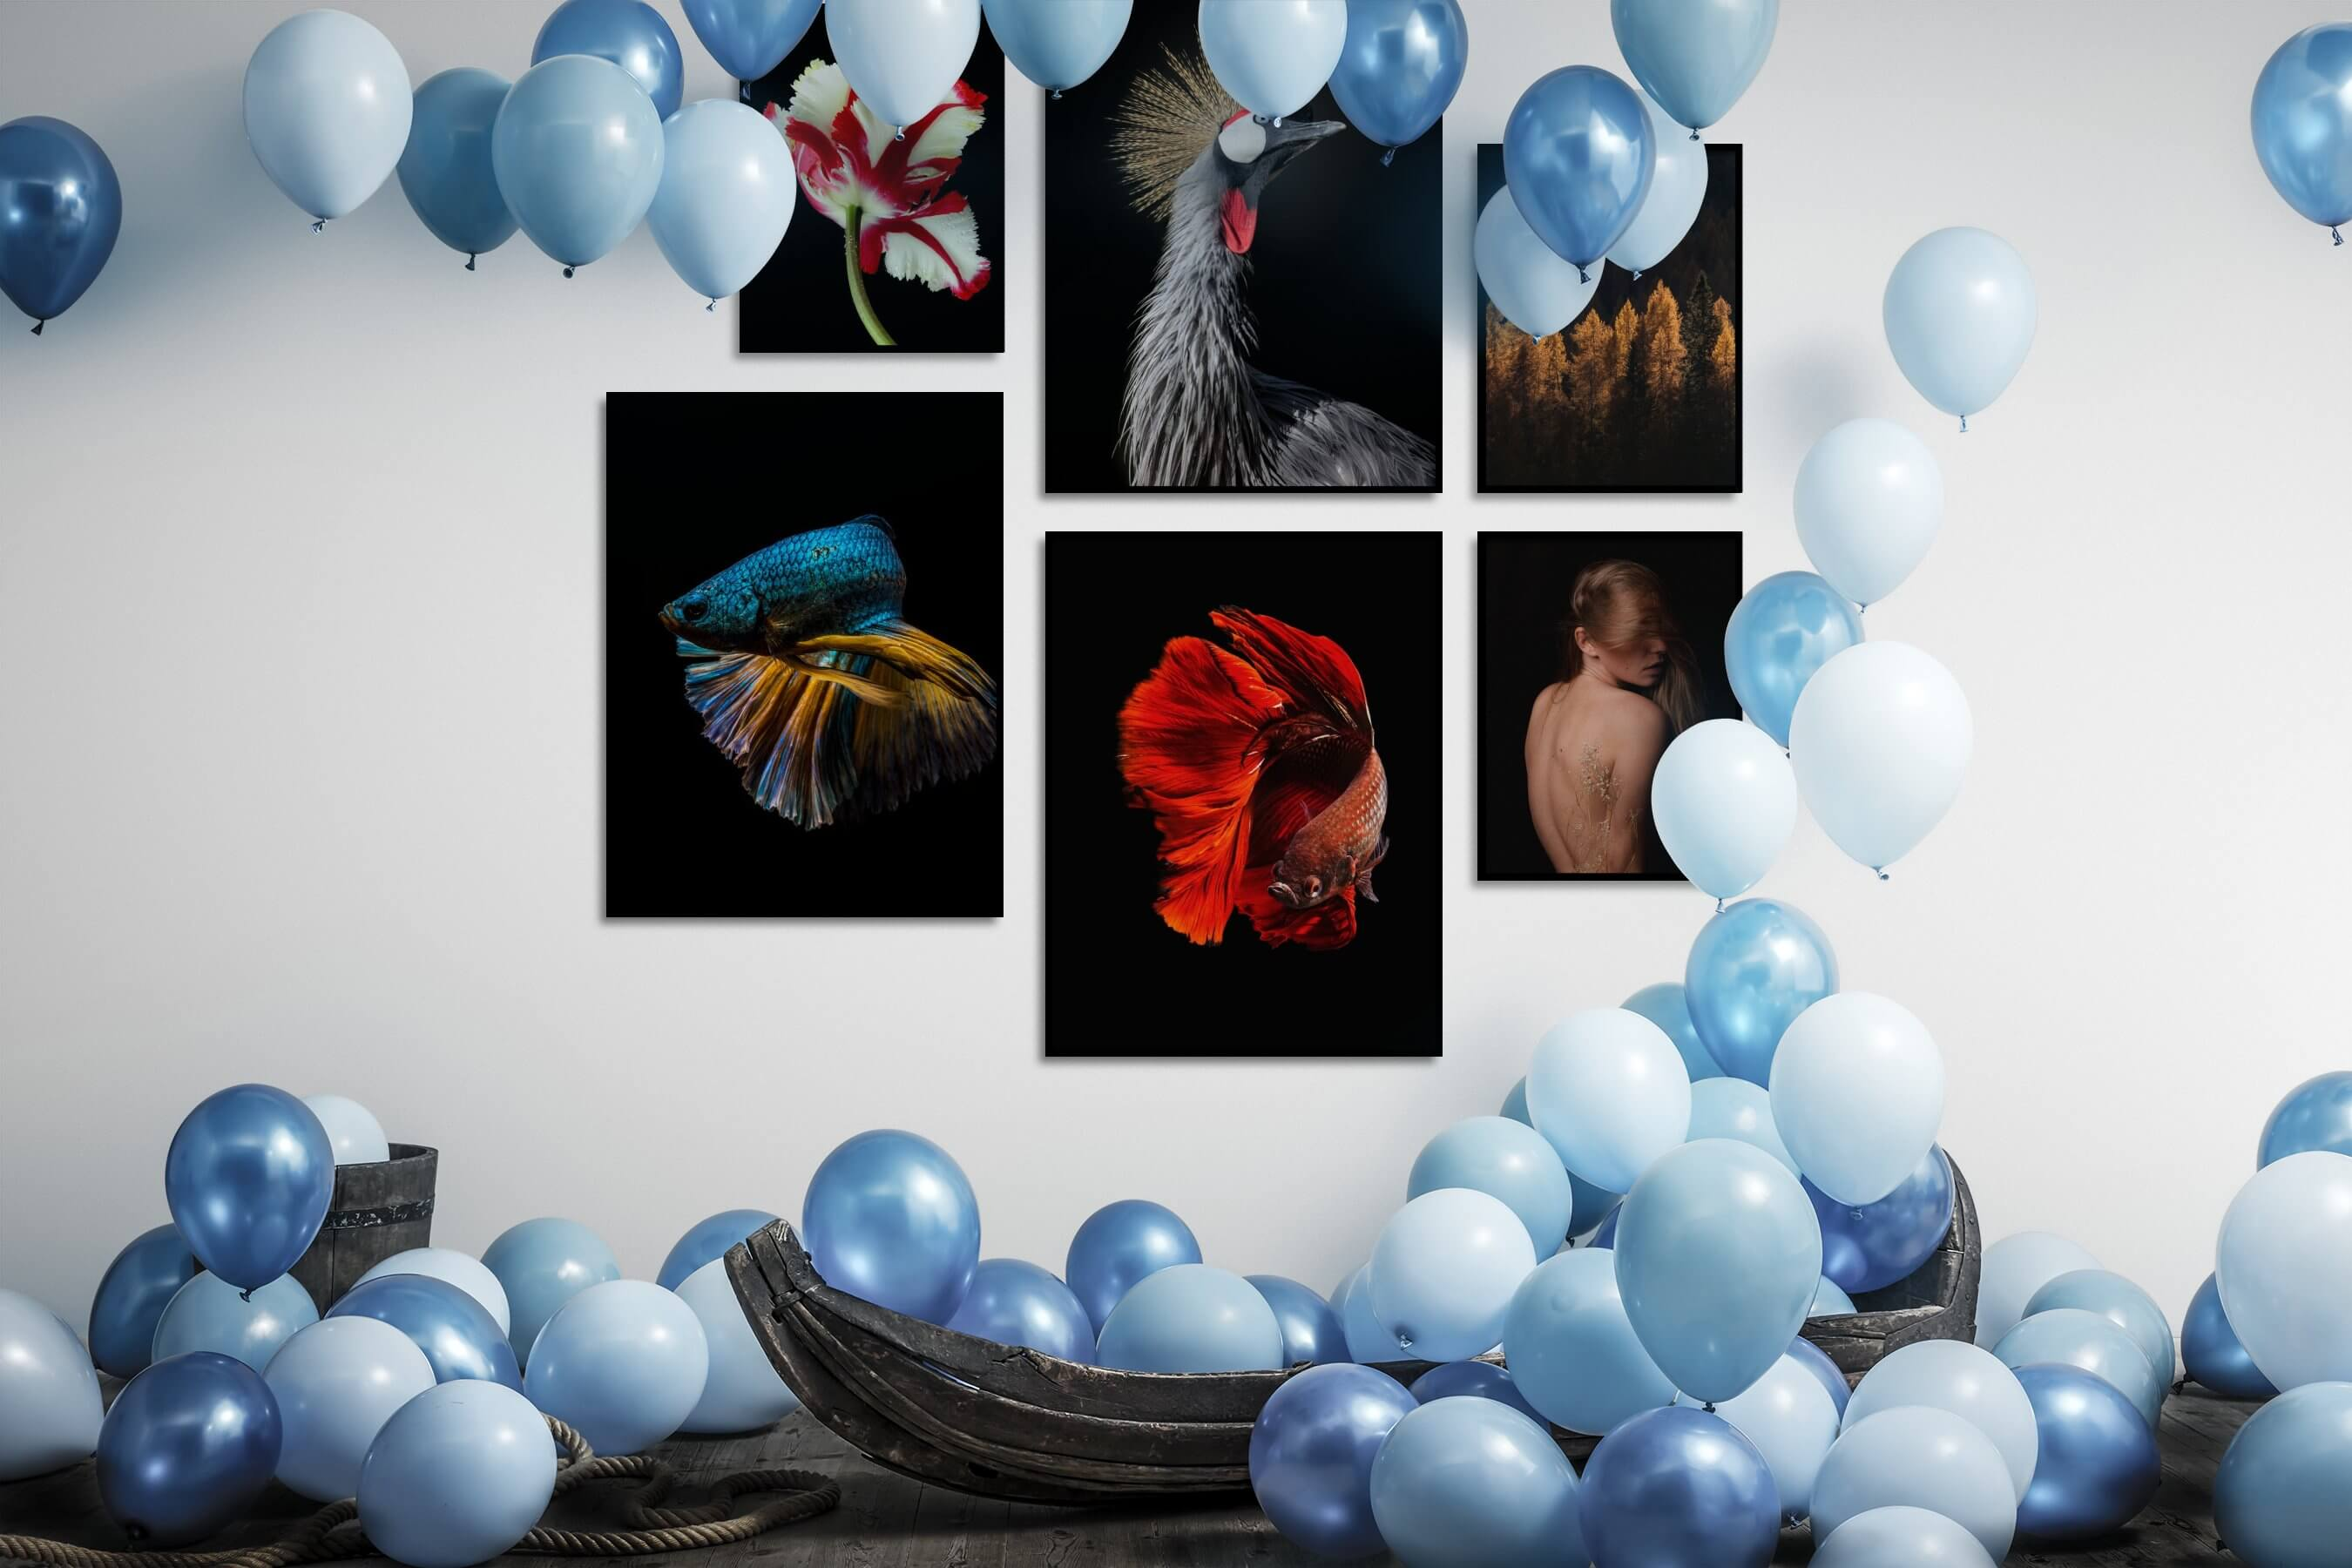 Gallery wall idea with six framed pictures arranged on a wall depicting Dark Tones, For the Moderate, Flowers & Plants, Animals, Colorful, For the Minimalist, Nature, Mindfulness, and Fashion & Beauty